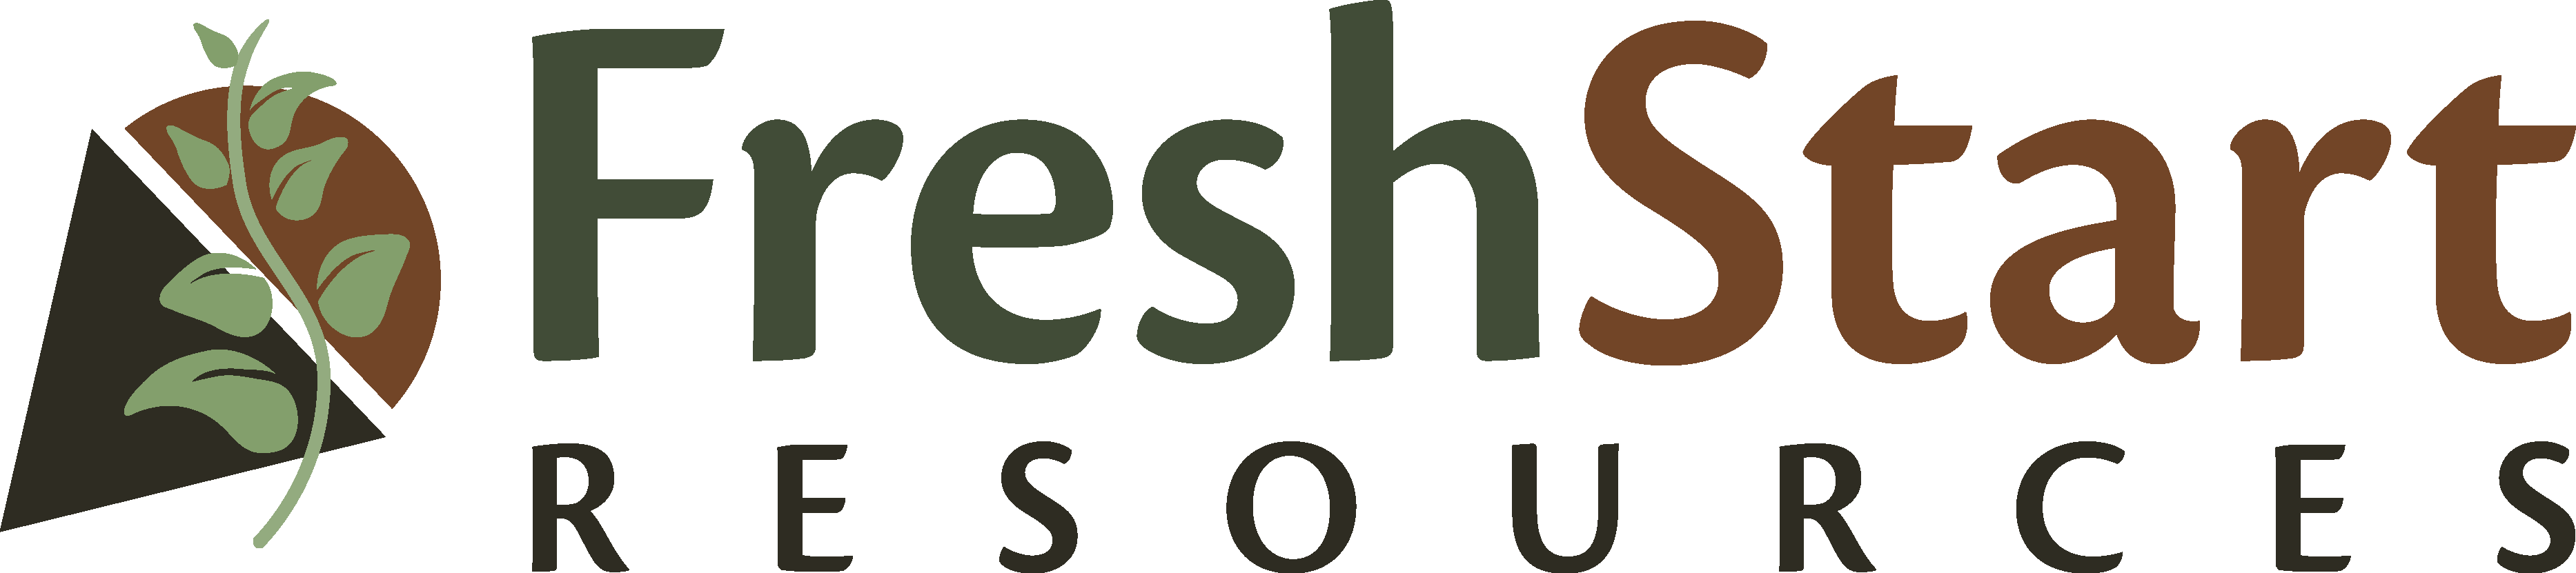 Freshstart Resources